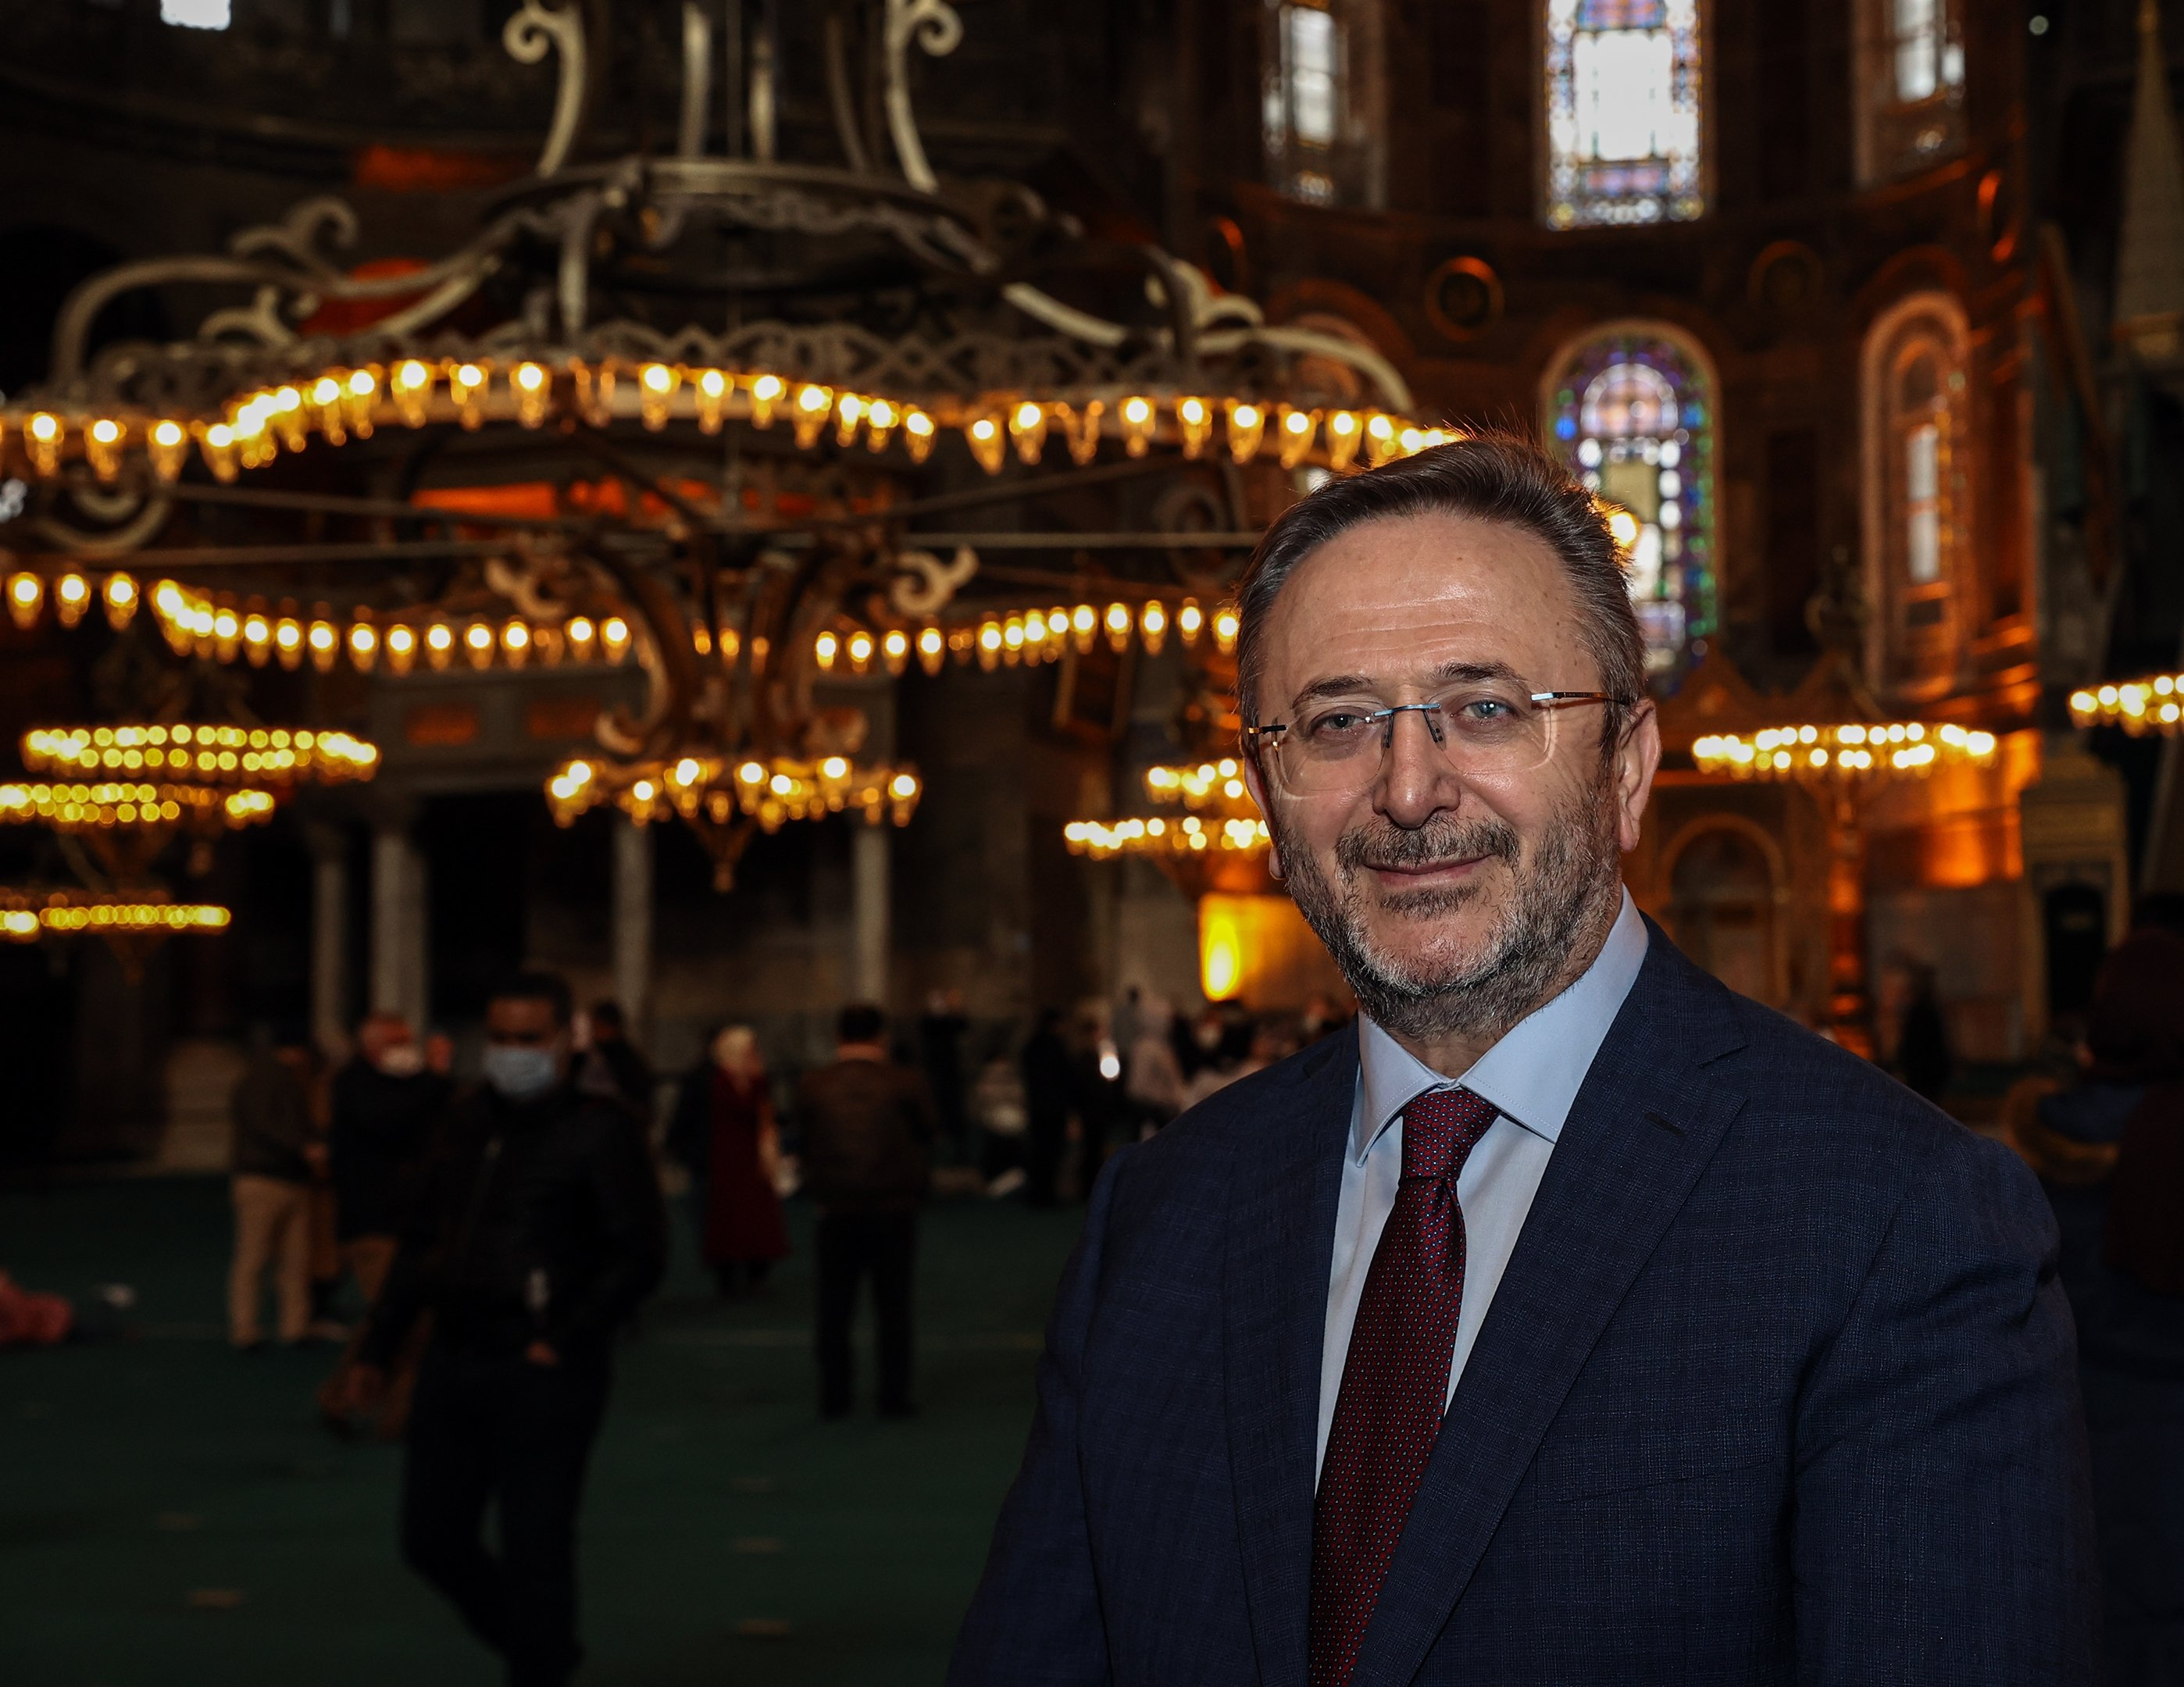 Istanbul Provincial Director of Culture and Tourism Coşkun Yılmaz is seen here inside the Hagia Sophia Grand Mosque, Istanbul, Turkey, April 18, 2021. (AA Photo)